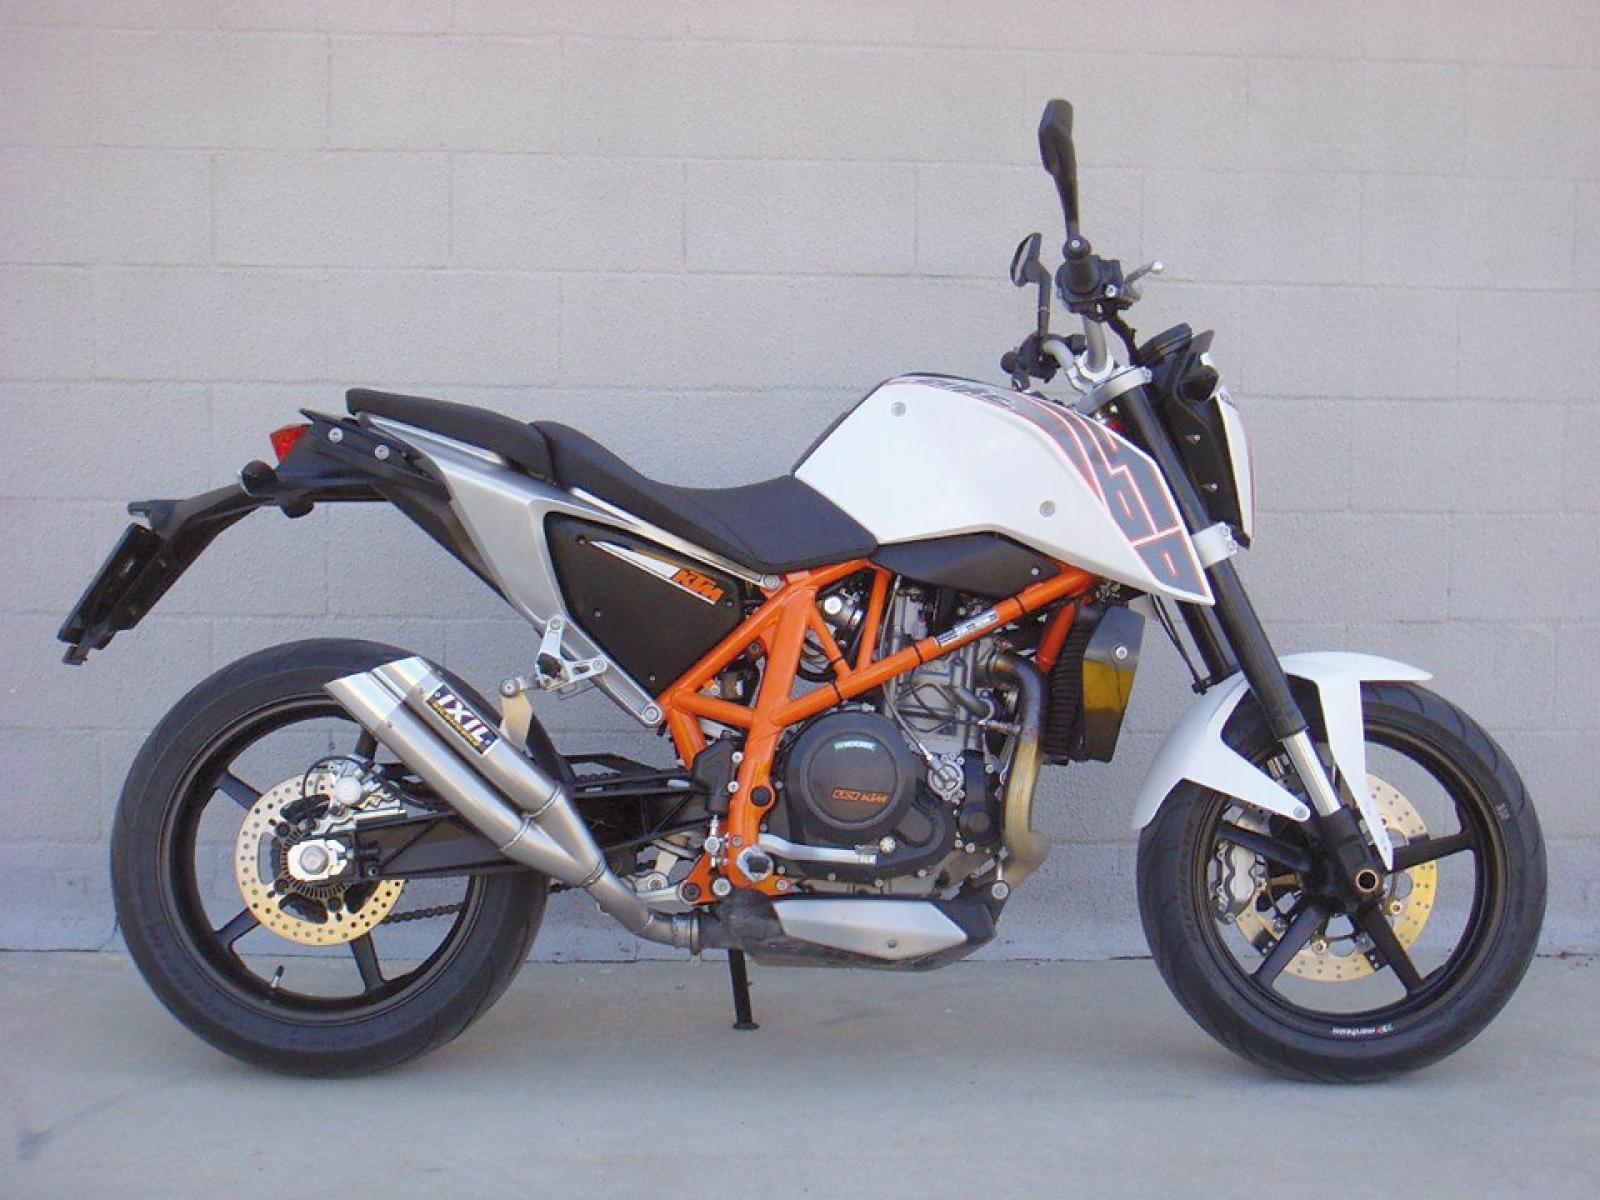 ktm ktm 690 abs duke moto zombdrive com. Black Bedroom Furniture Sets. Home Design Ideas